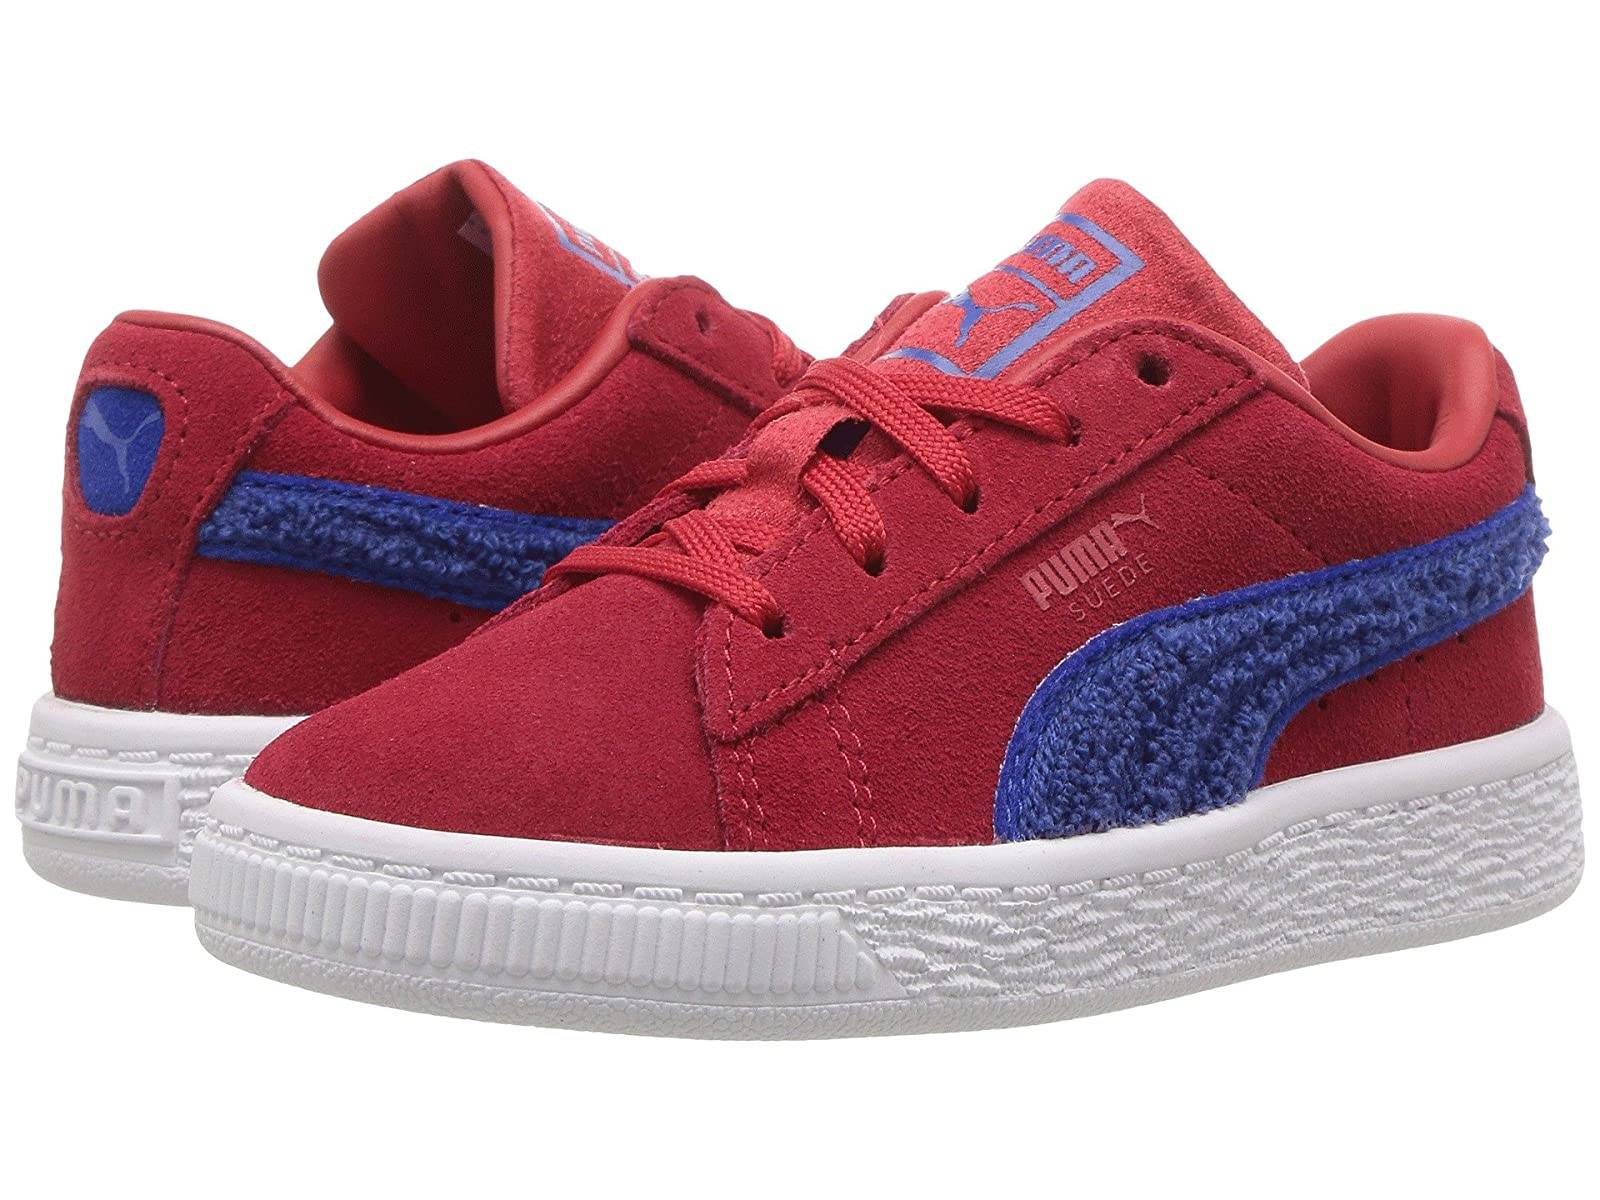 Puma Kids Suede Classic Terry (Toddler)Cheap and distinctive eye-catching shoes